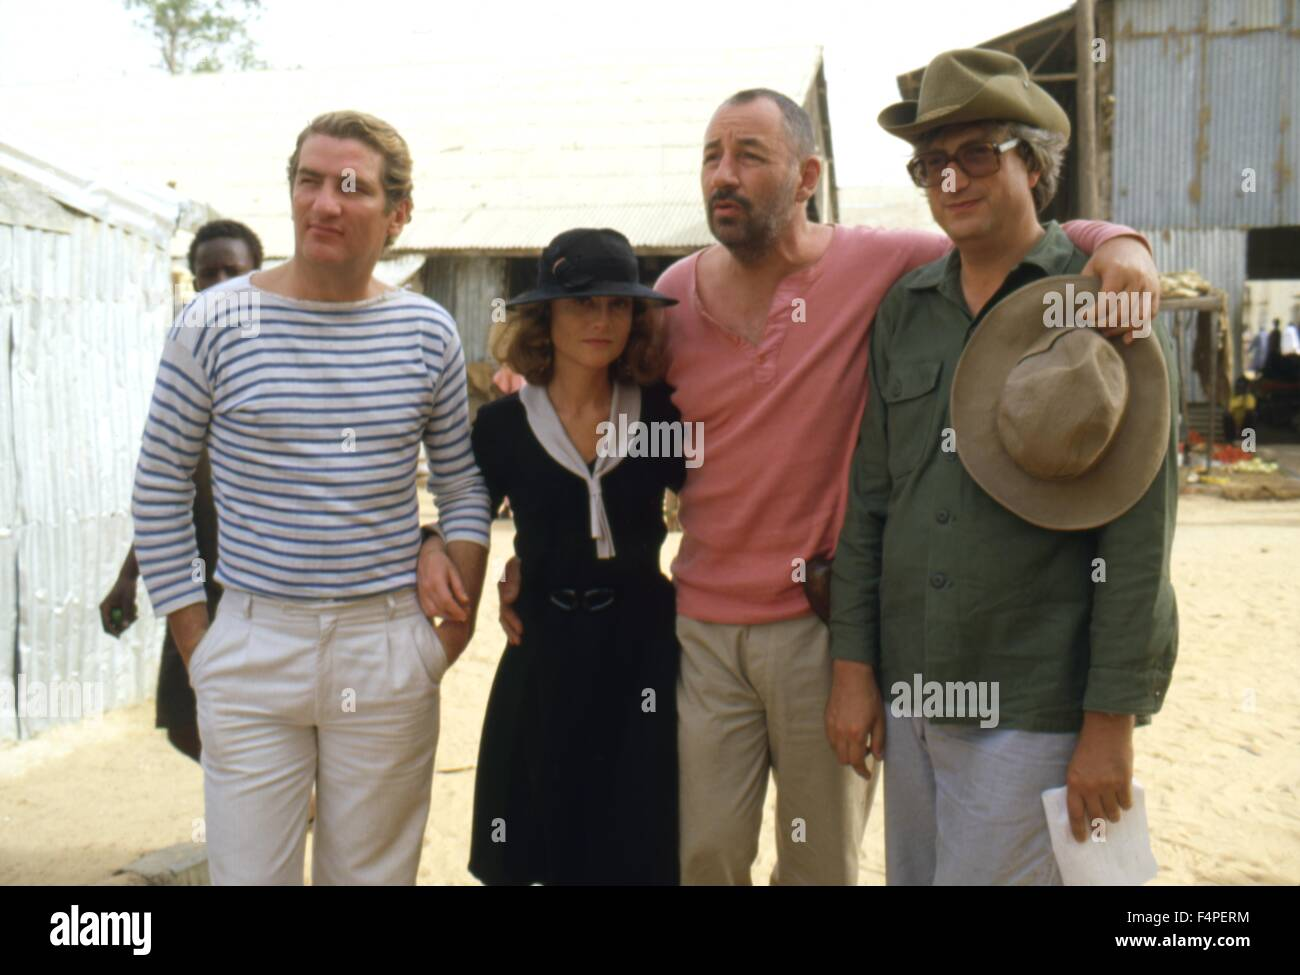 On the set eddy mitchell isabelle huppert philippe noiret and stock photo royalty free image - Isabelle huppert coup de torchon ...